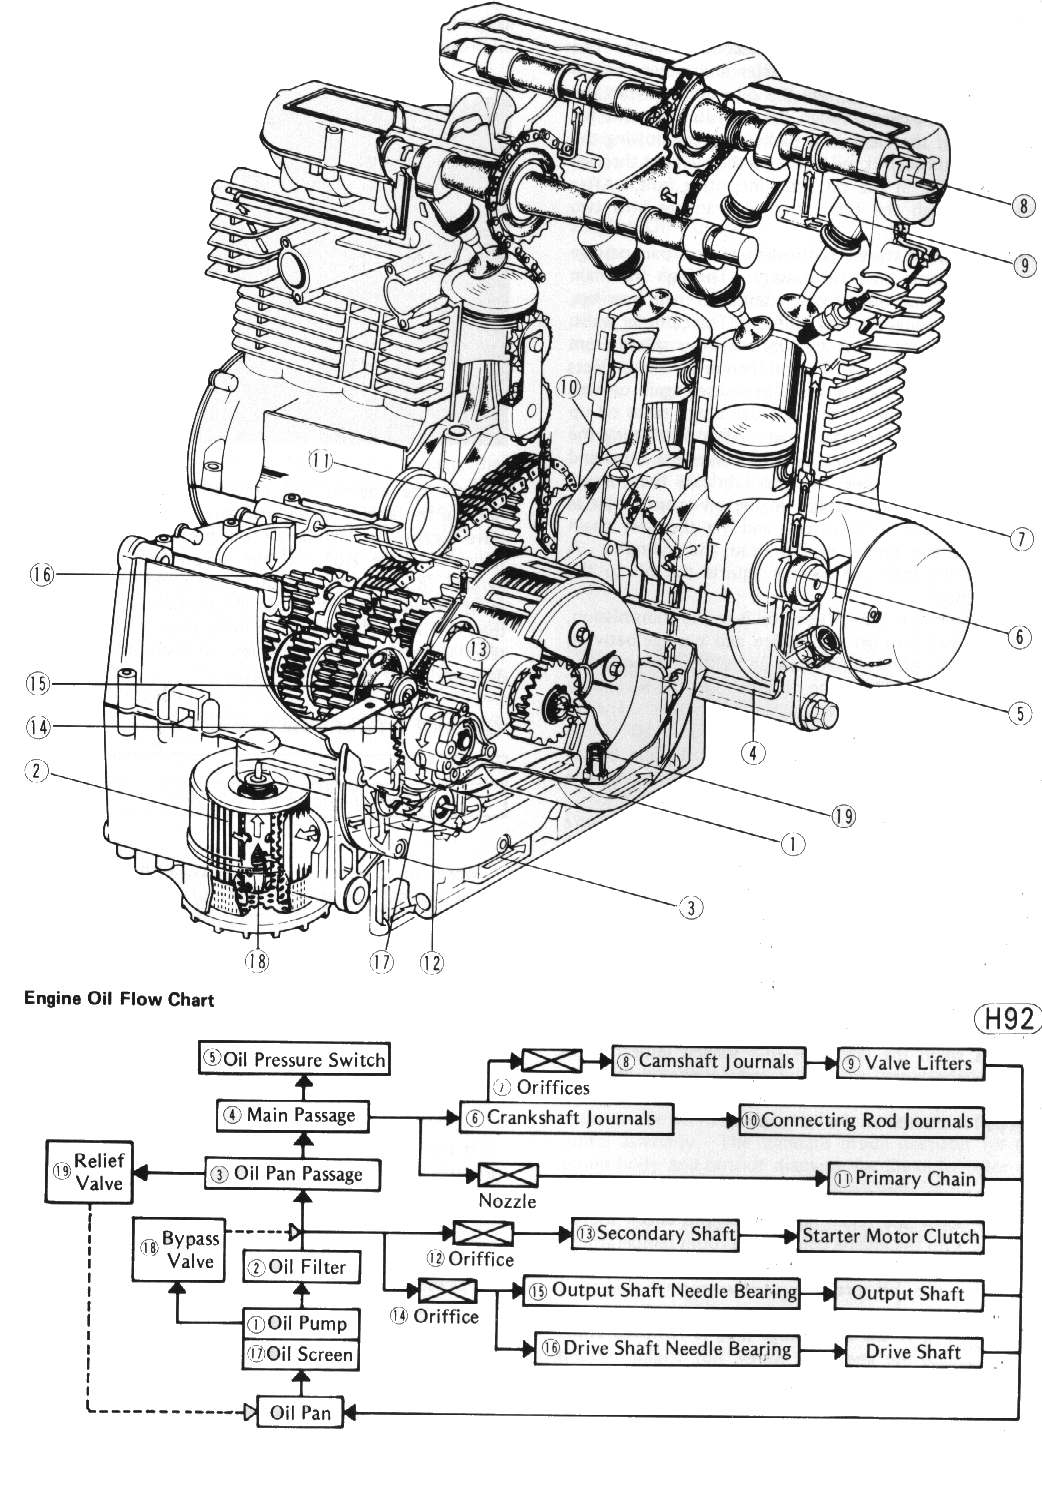 4_stroke_oilflow on Honda Motorcycle Repair Diagrams